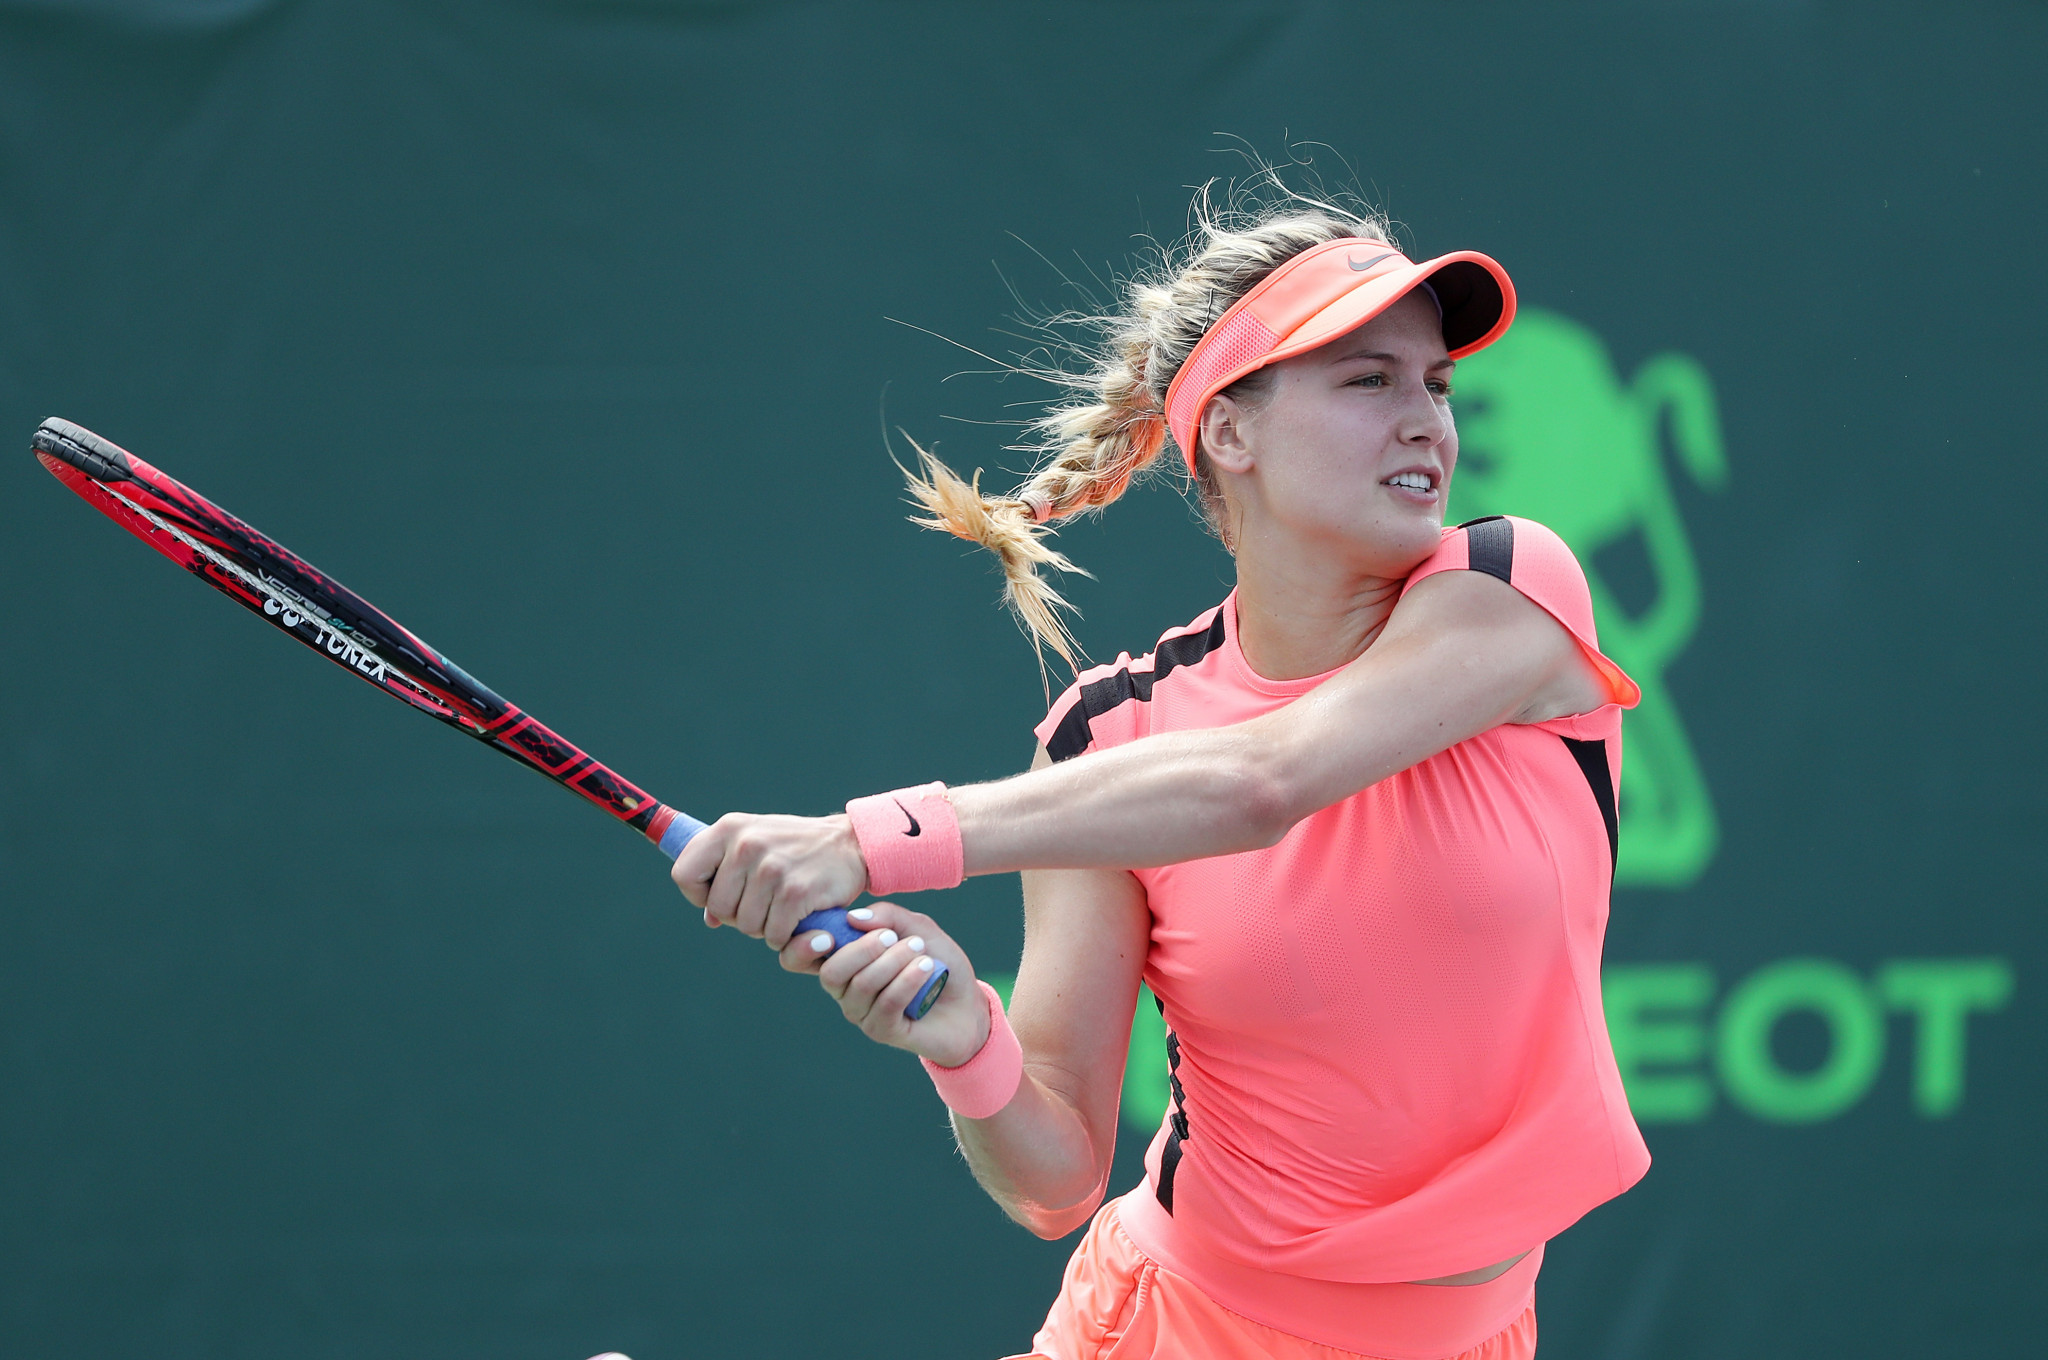 Former Grand Slam finalists have mixed fortunes in Miami Open qualifying